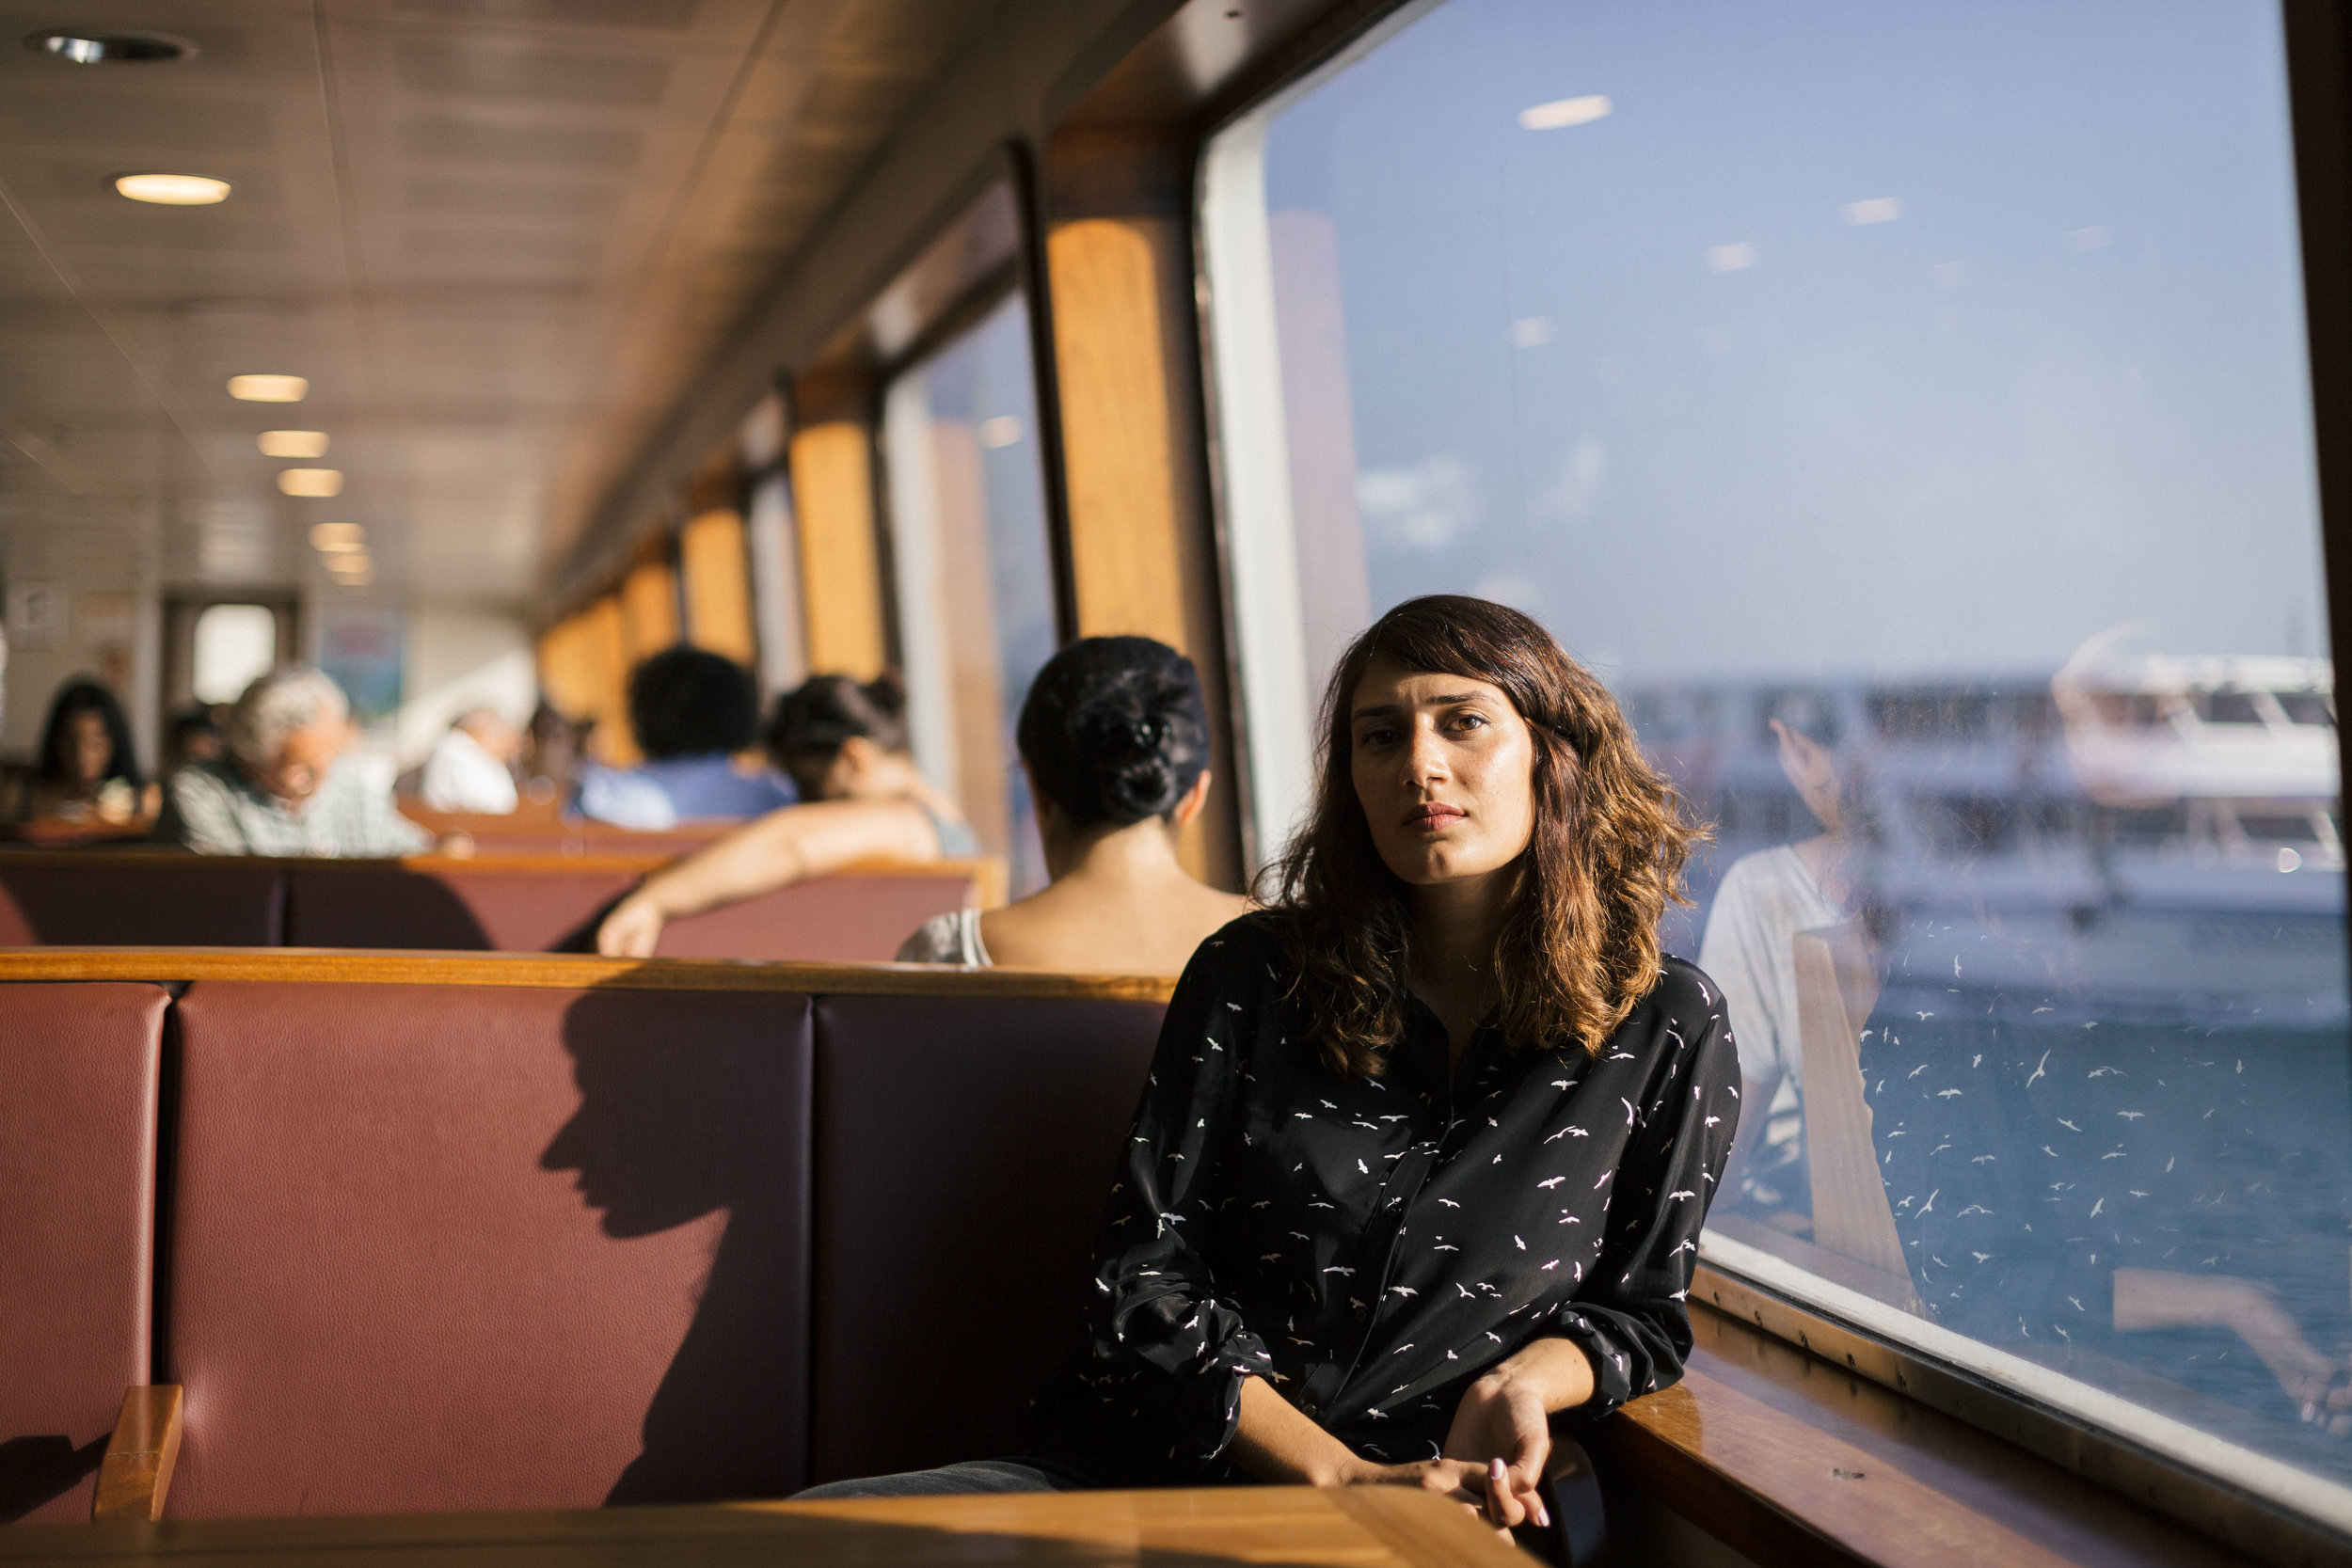 German-Turkish journalist and writer Fatma Aydemir is a rising star in her country's literary scene. (Photo courtesy of Bradley Secker)